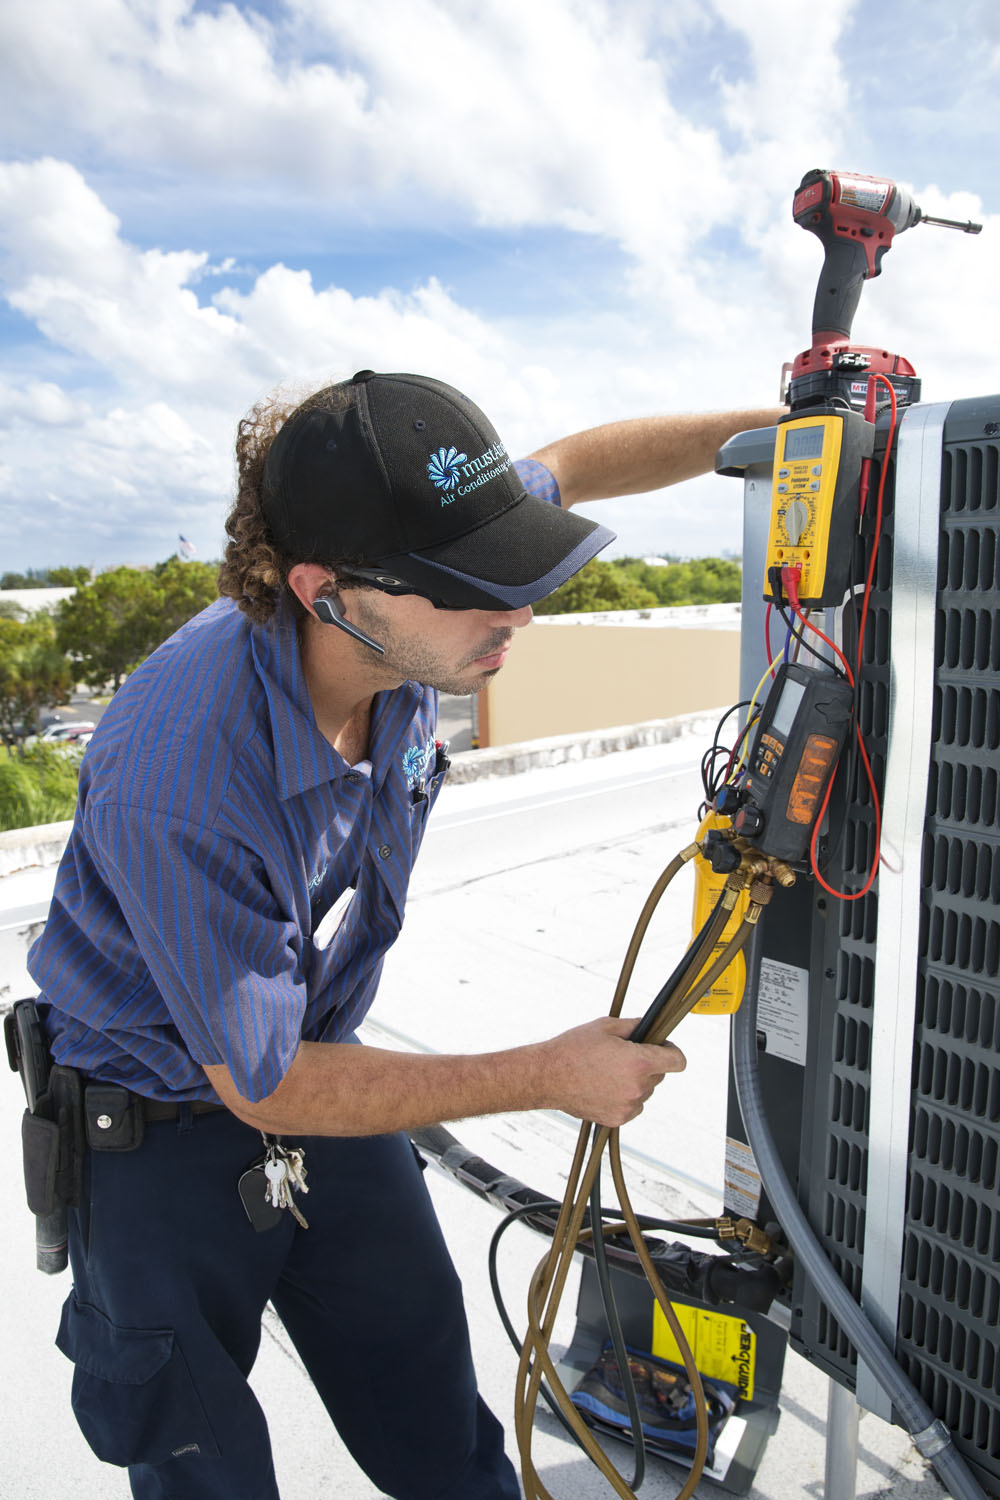 hight resolution of when you need air conditioning repair service replacement or tune up in boca raton coconut creek coral springs deerfield beach fort lauderdale